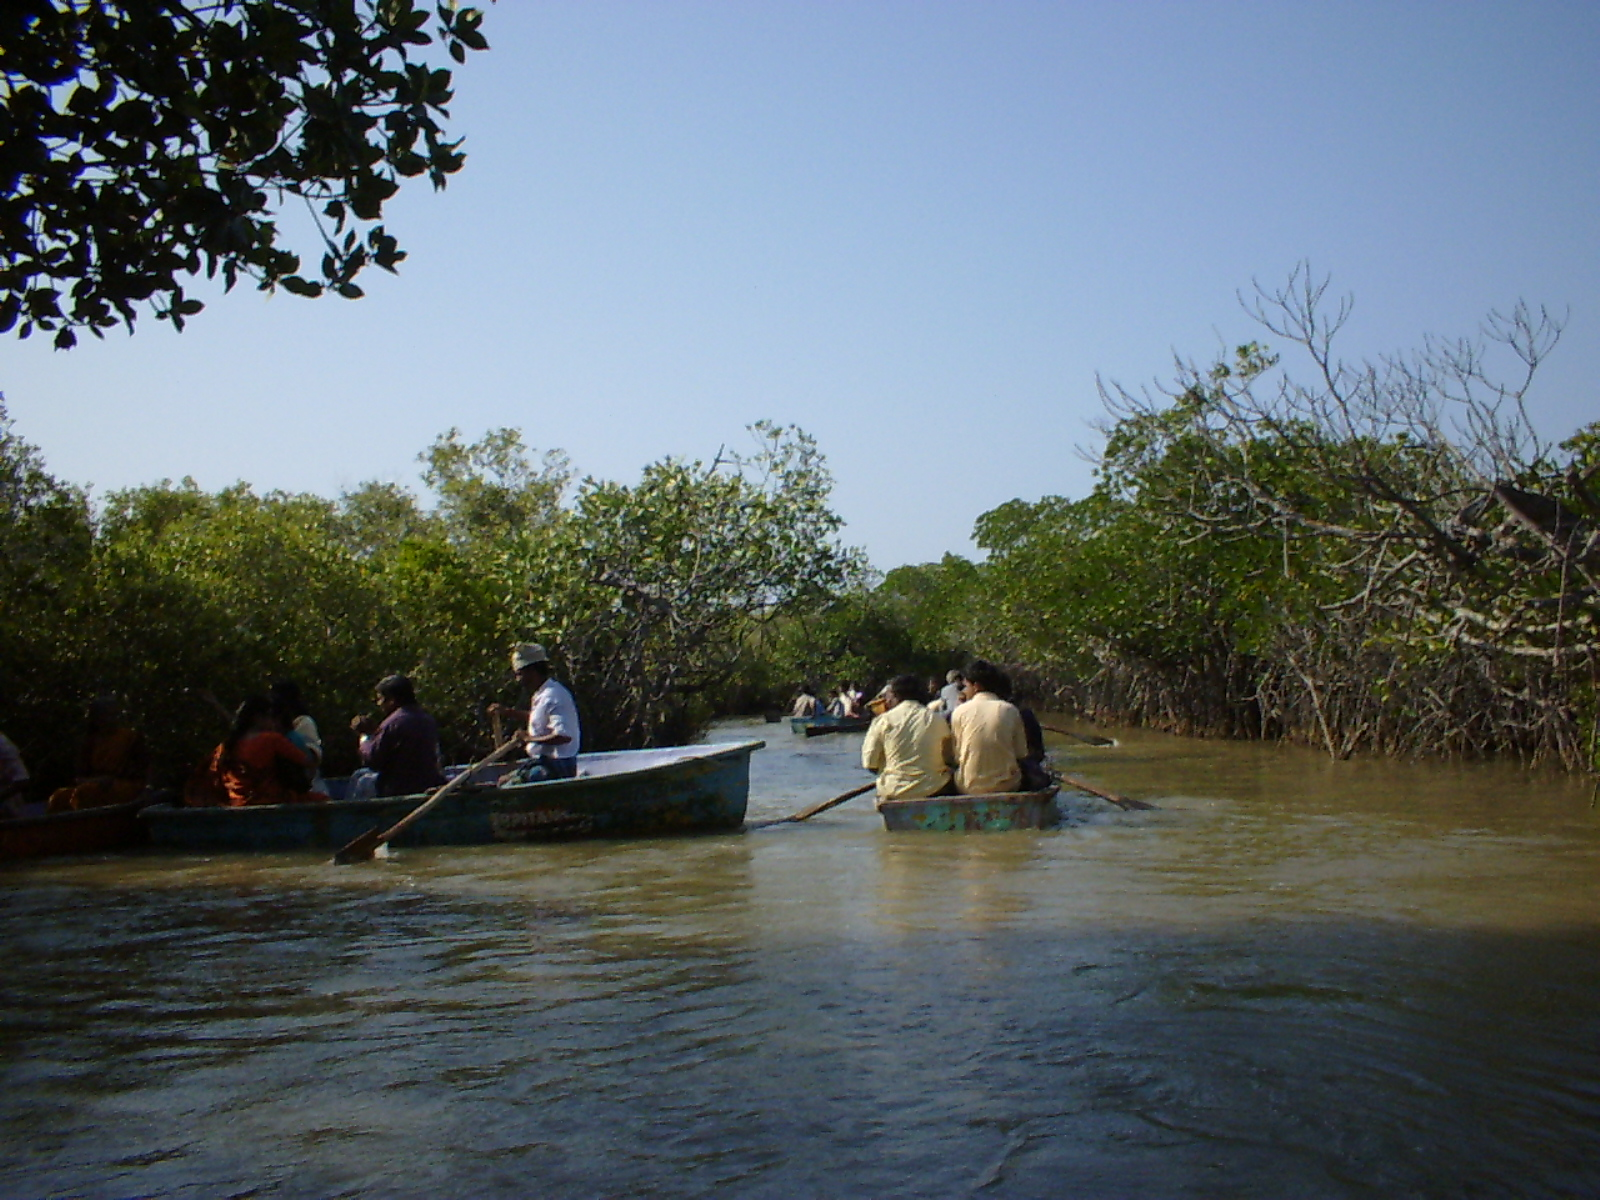 Boat ride in the mangrove waters1